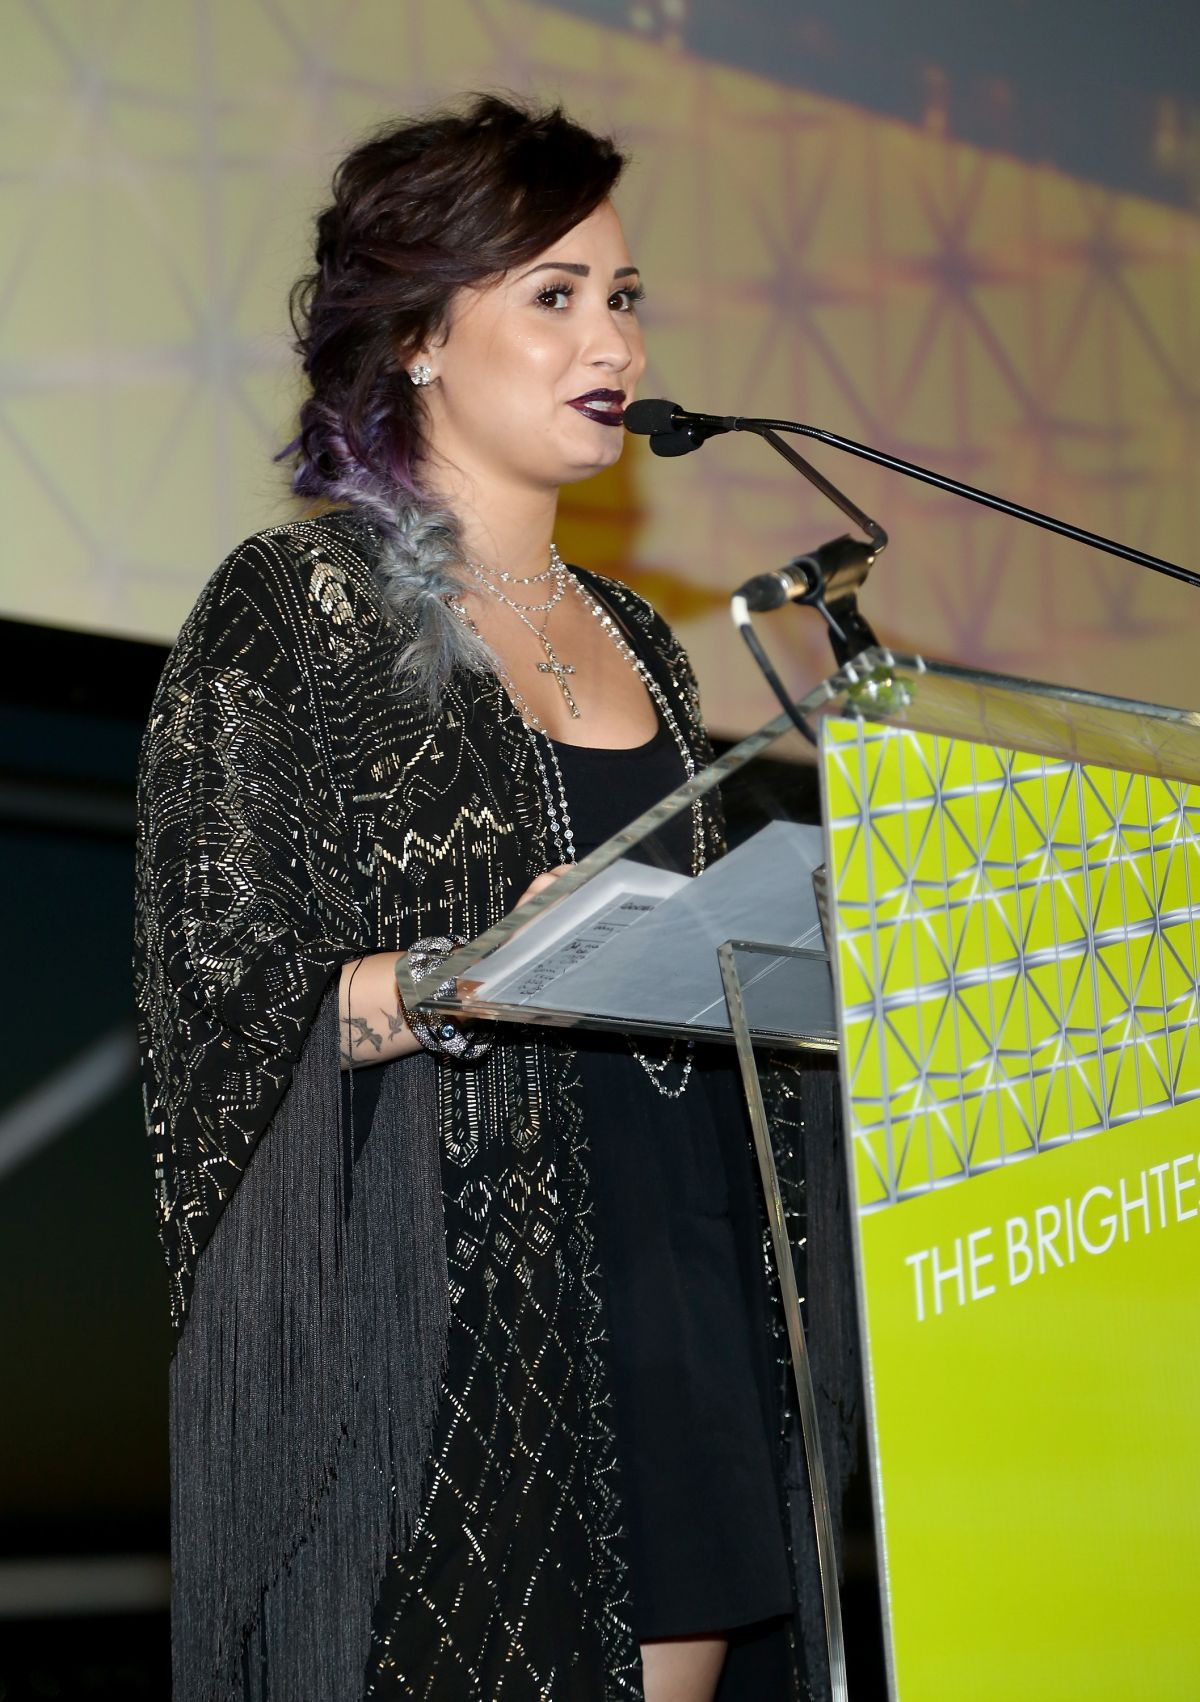 DEMI LOVATO at 2014 Jed Foundation Gala in New York